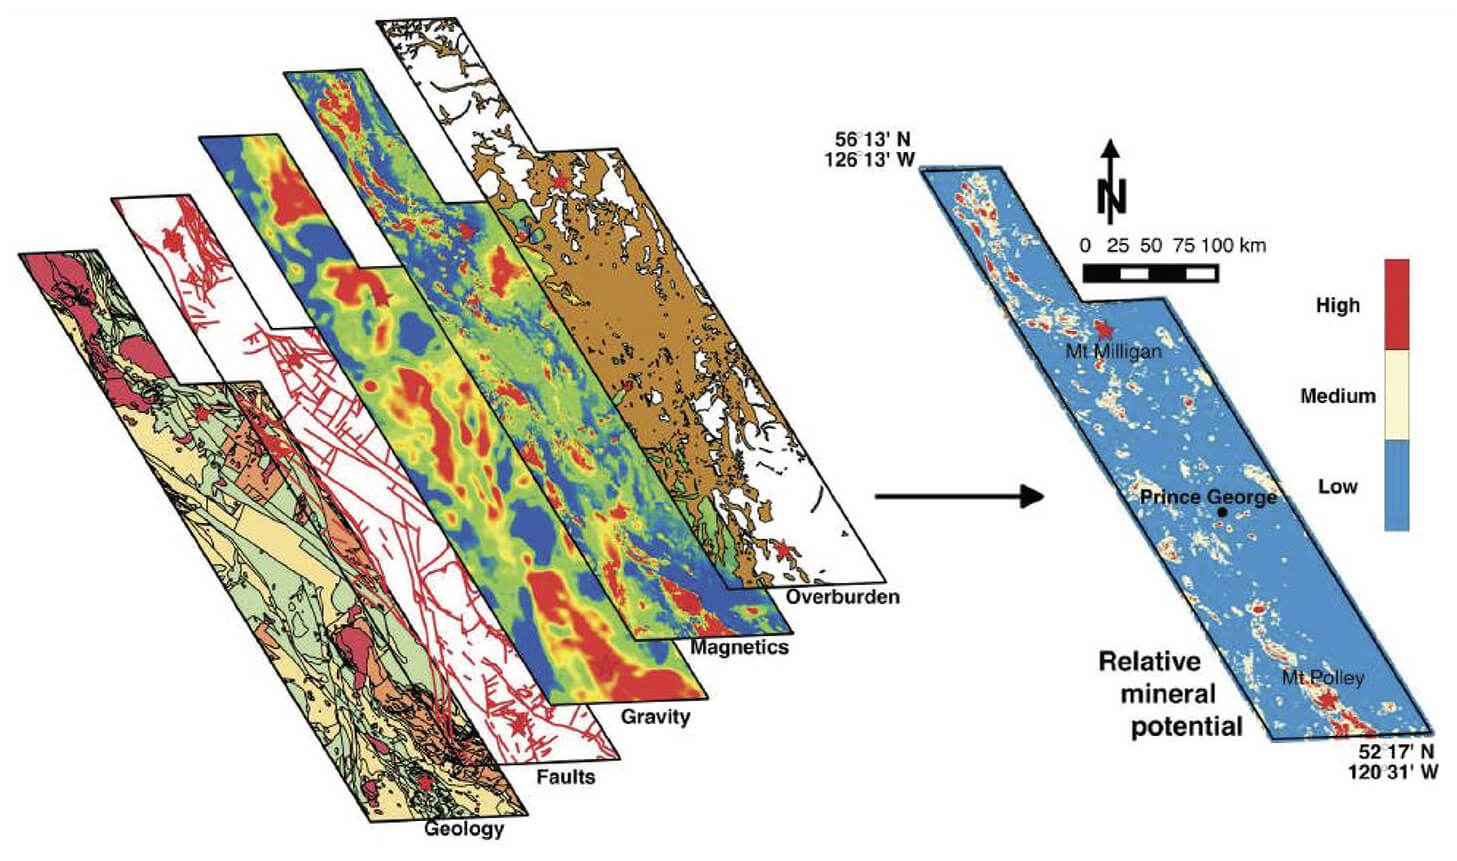 Mineral Prospectivity Mapping Using a VNet Convolutional Neural Network